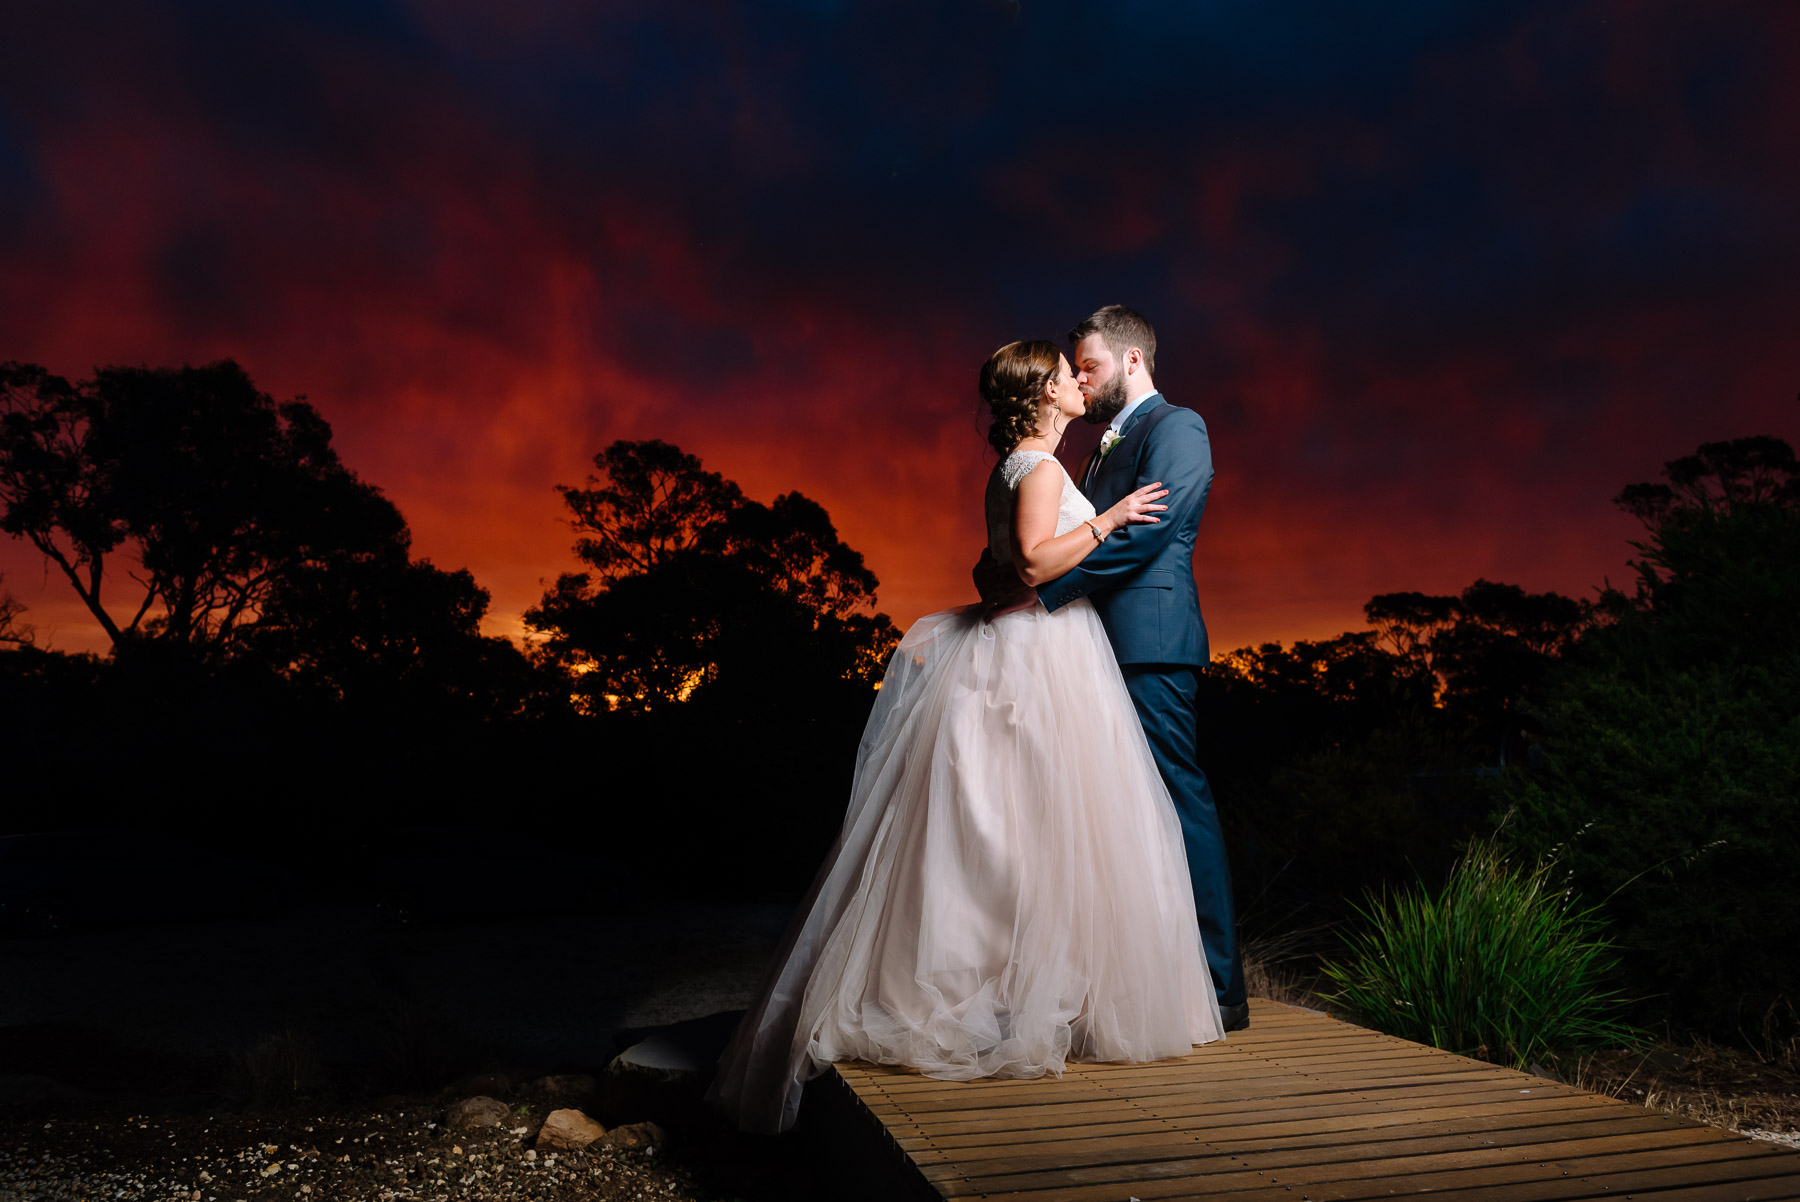 Justin_and_Jim_Best_Of_Wedding_Photography-10.jpg